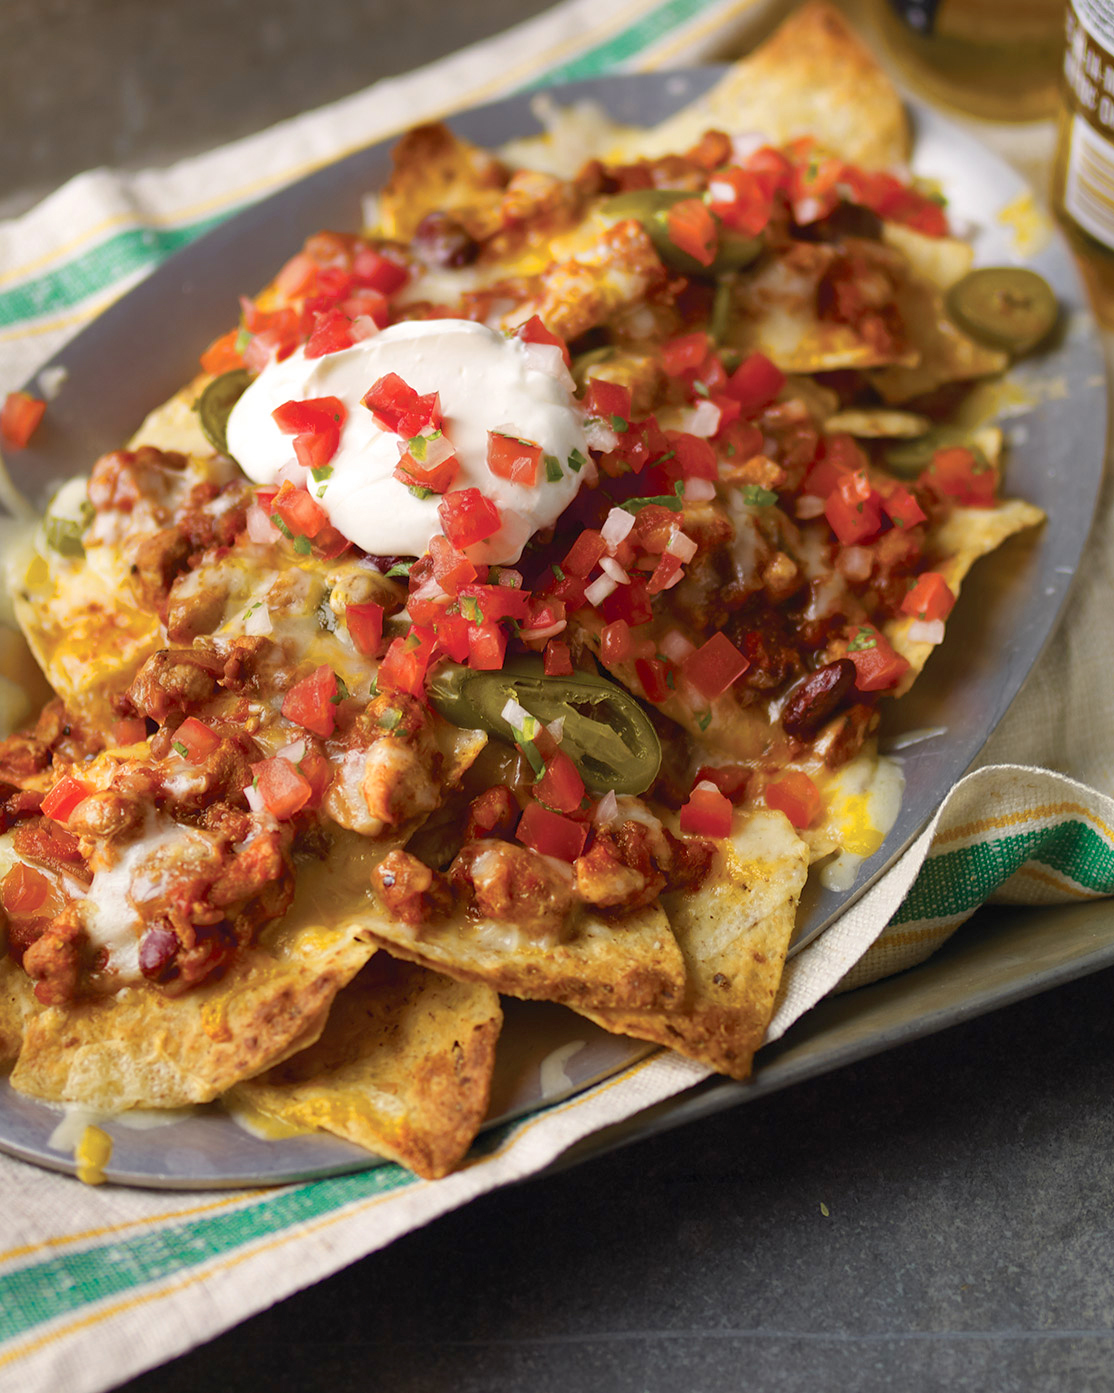 9 Nachos Recipes That Are So Much More Than Chips and Queso